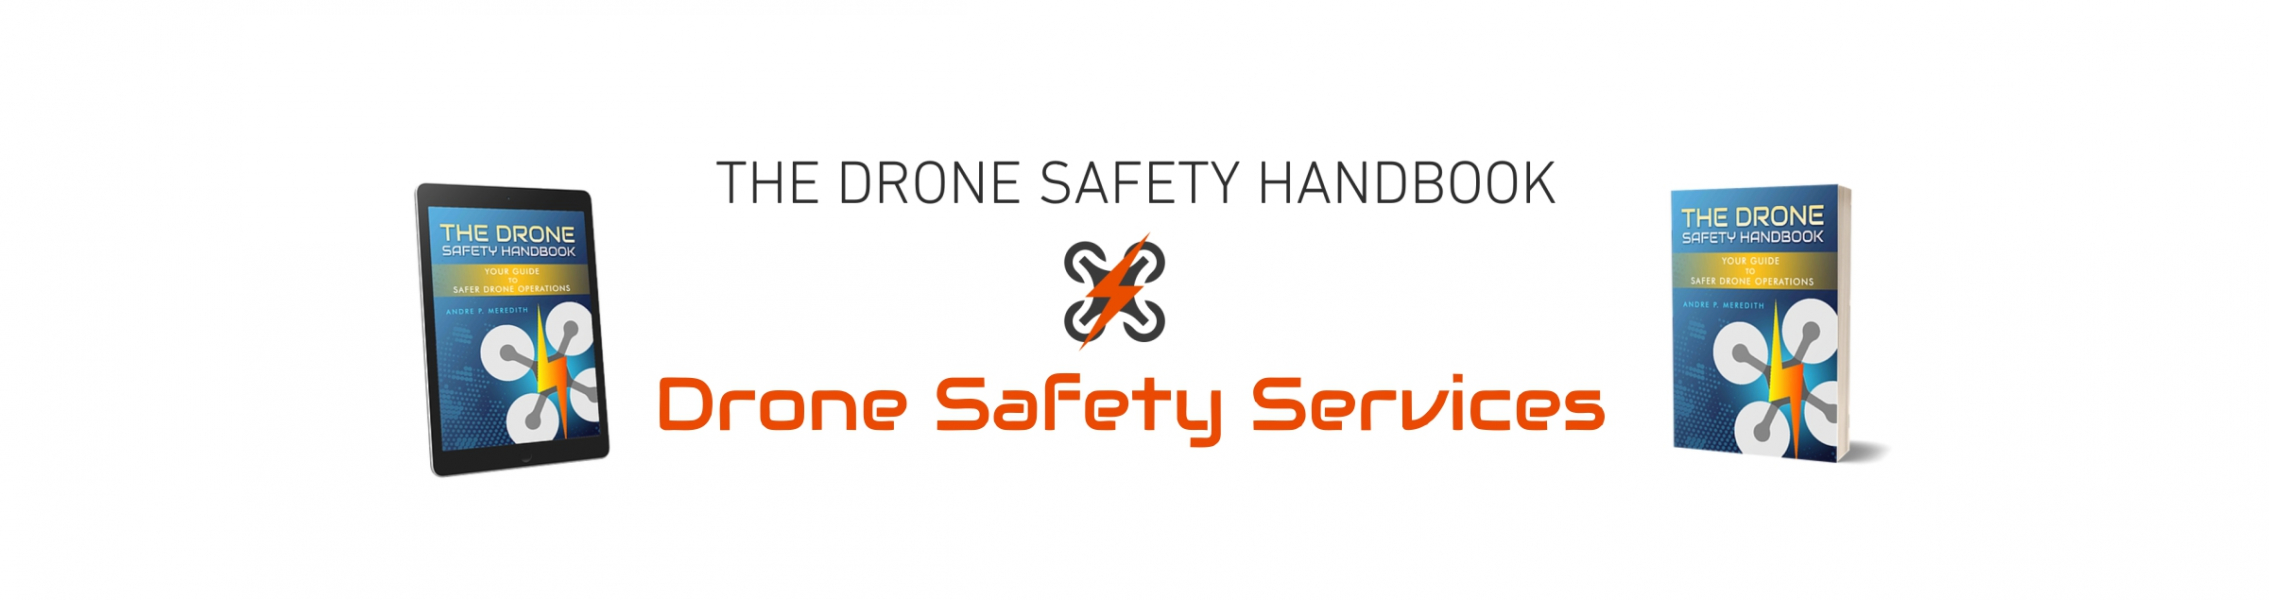 drone safety services Your One Stop Drone Safety Shop